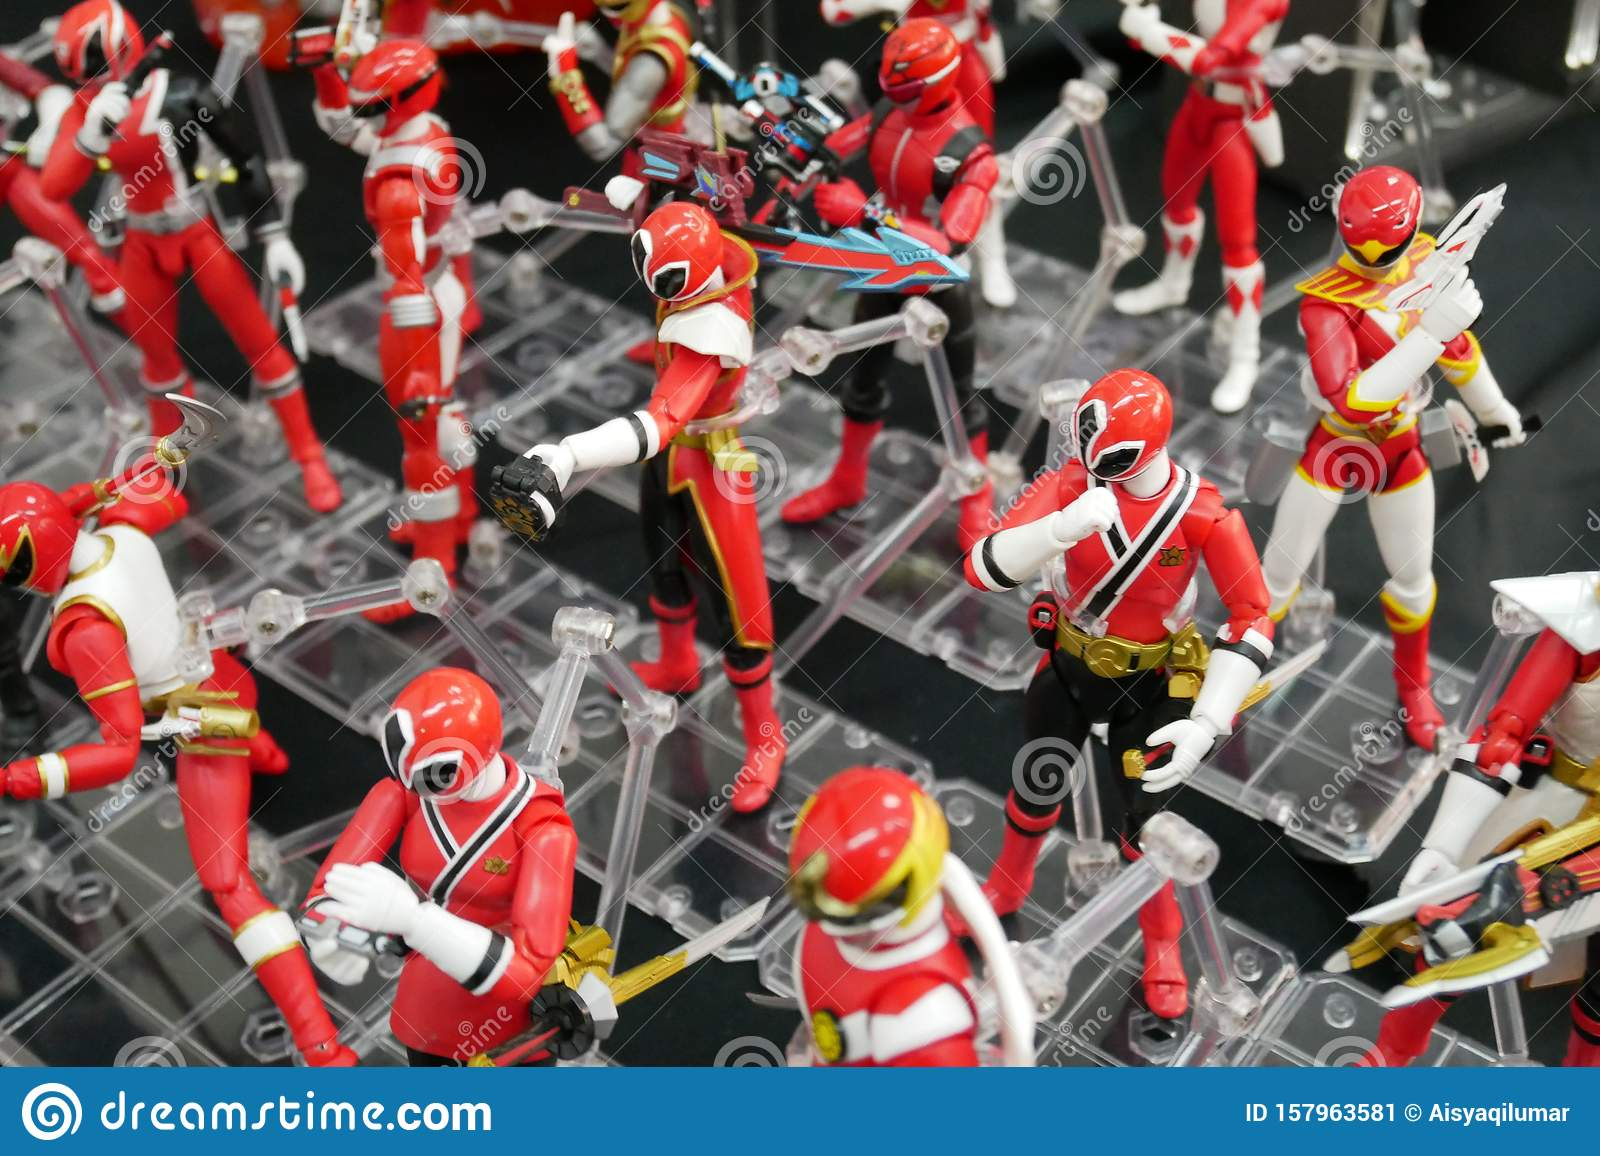 Selective focused of fictional character action figure from American kids TV series Power Rangers.